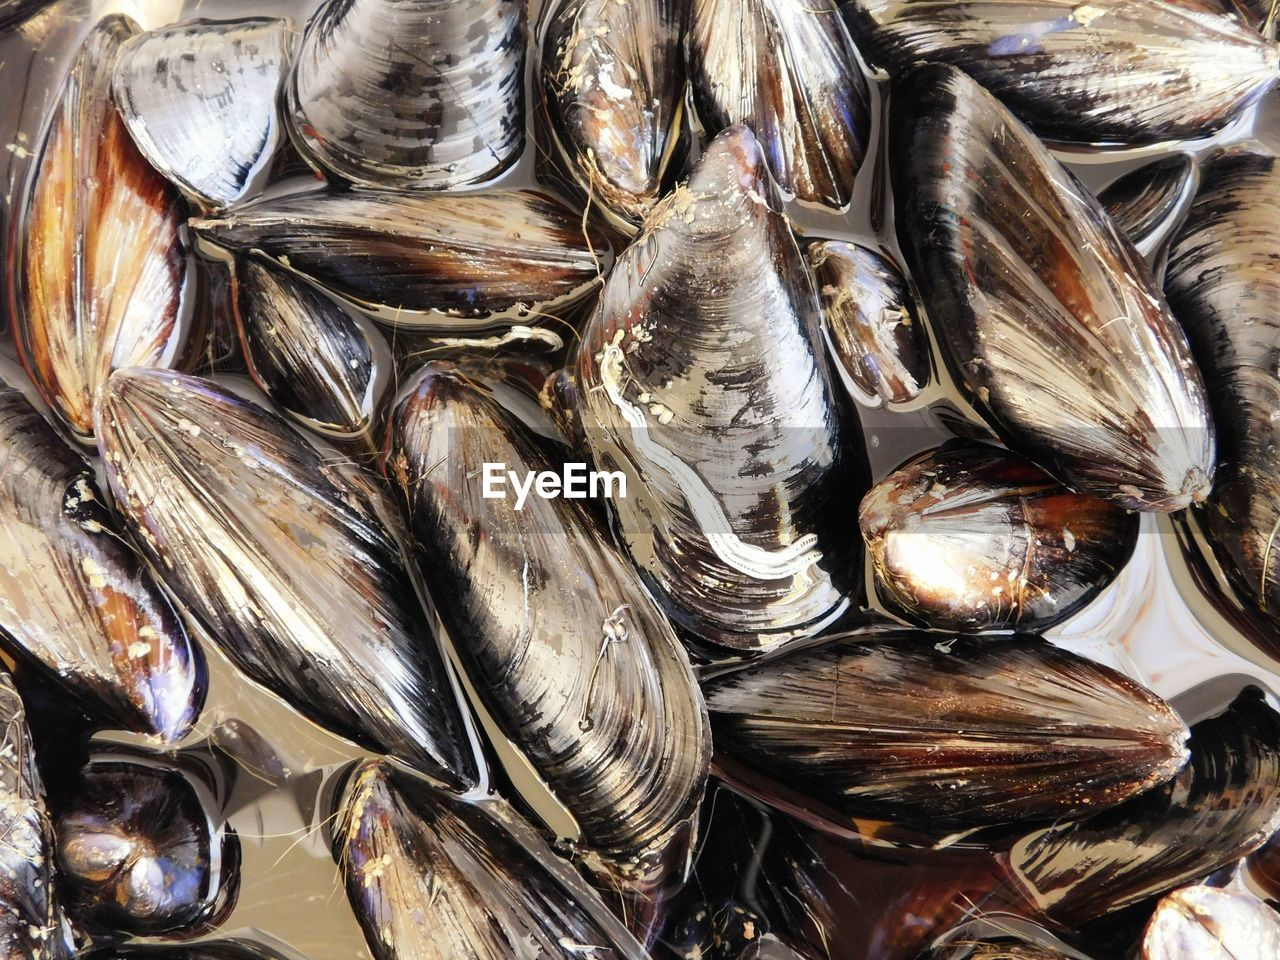 Close-up of mussels for sale at fish market